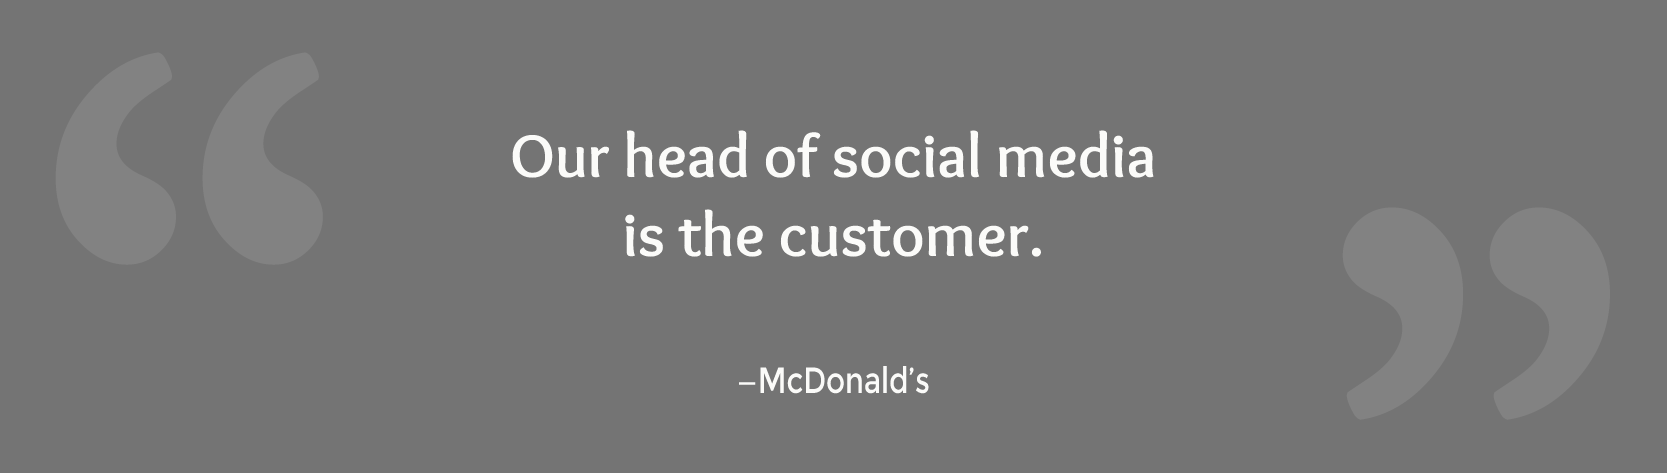 consulting-social-quotes-03.png